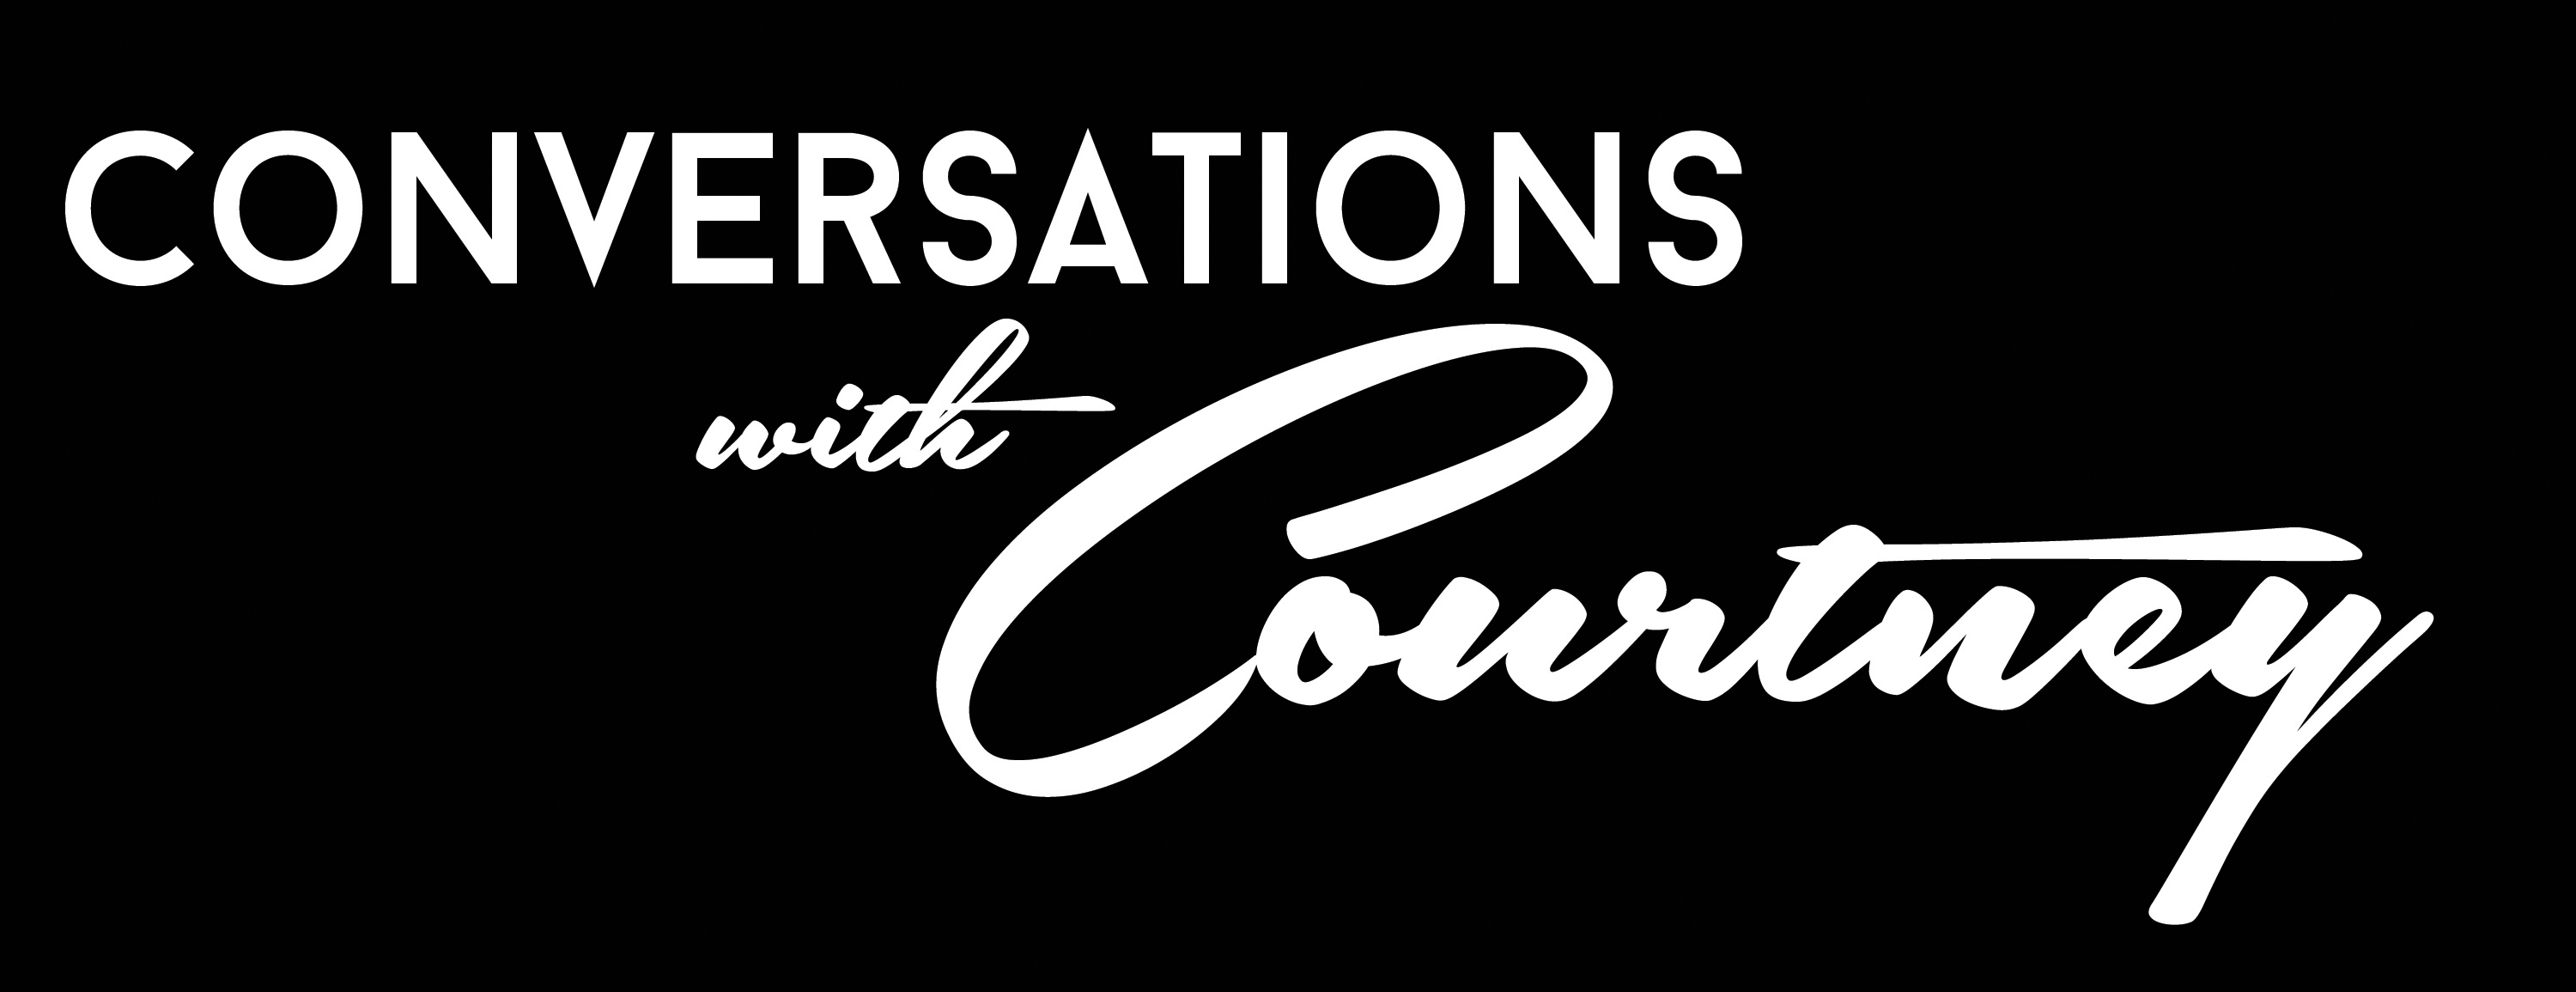 ConversationswithCourtney Web Series